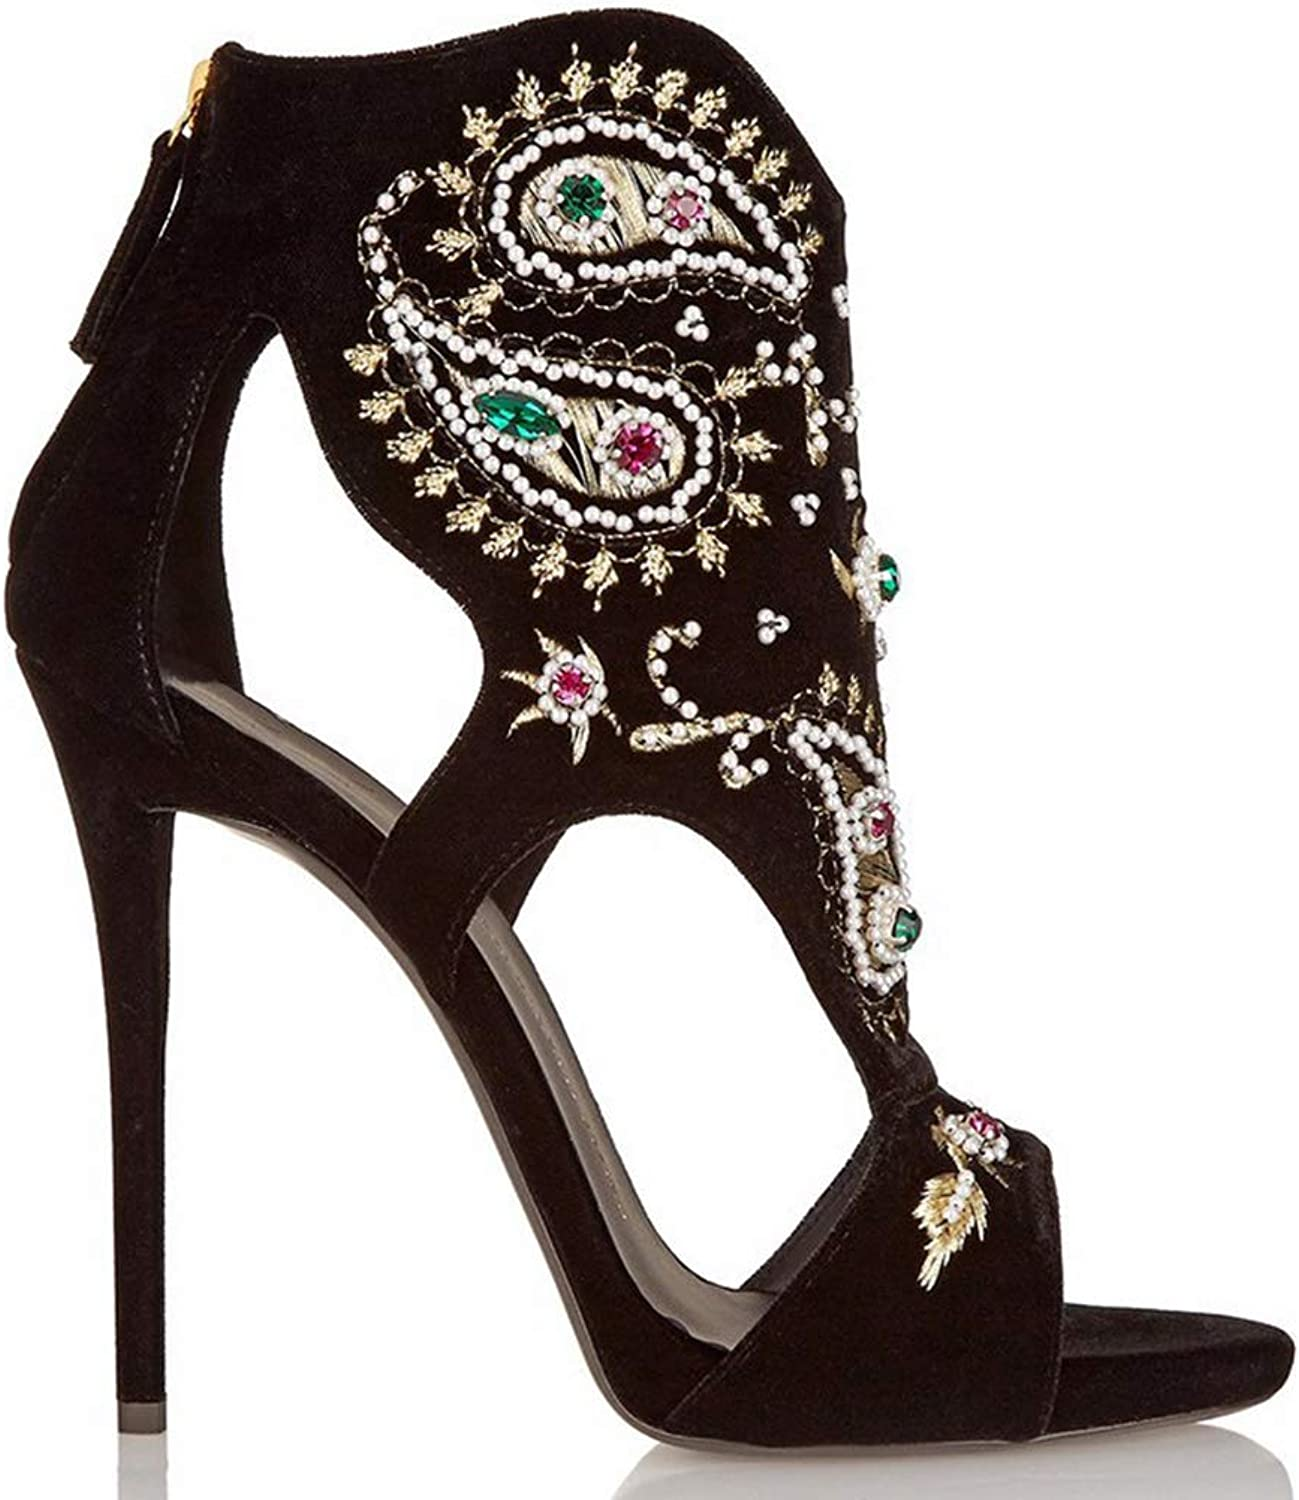 Sandals, Women's high Heel Sandals - Suede Embroidered Fish Mouth Open Toe shoes - Rhinestone Embroidery Retro Sandals Heel Height (6-8CM)